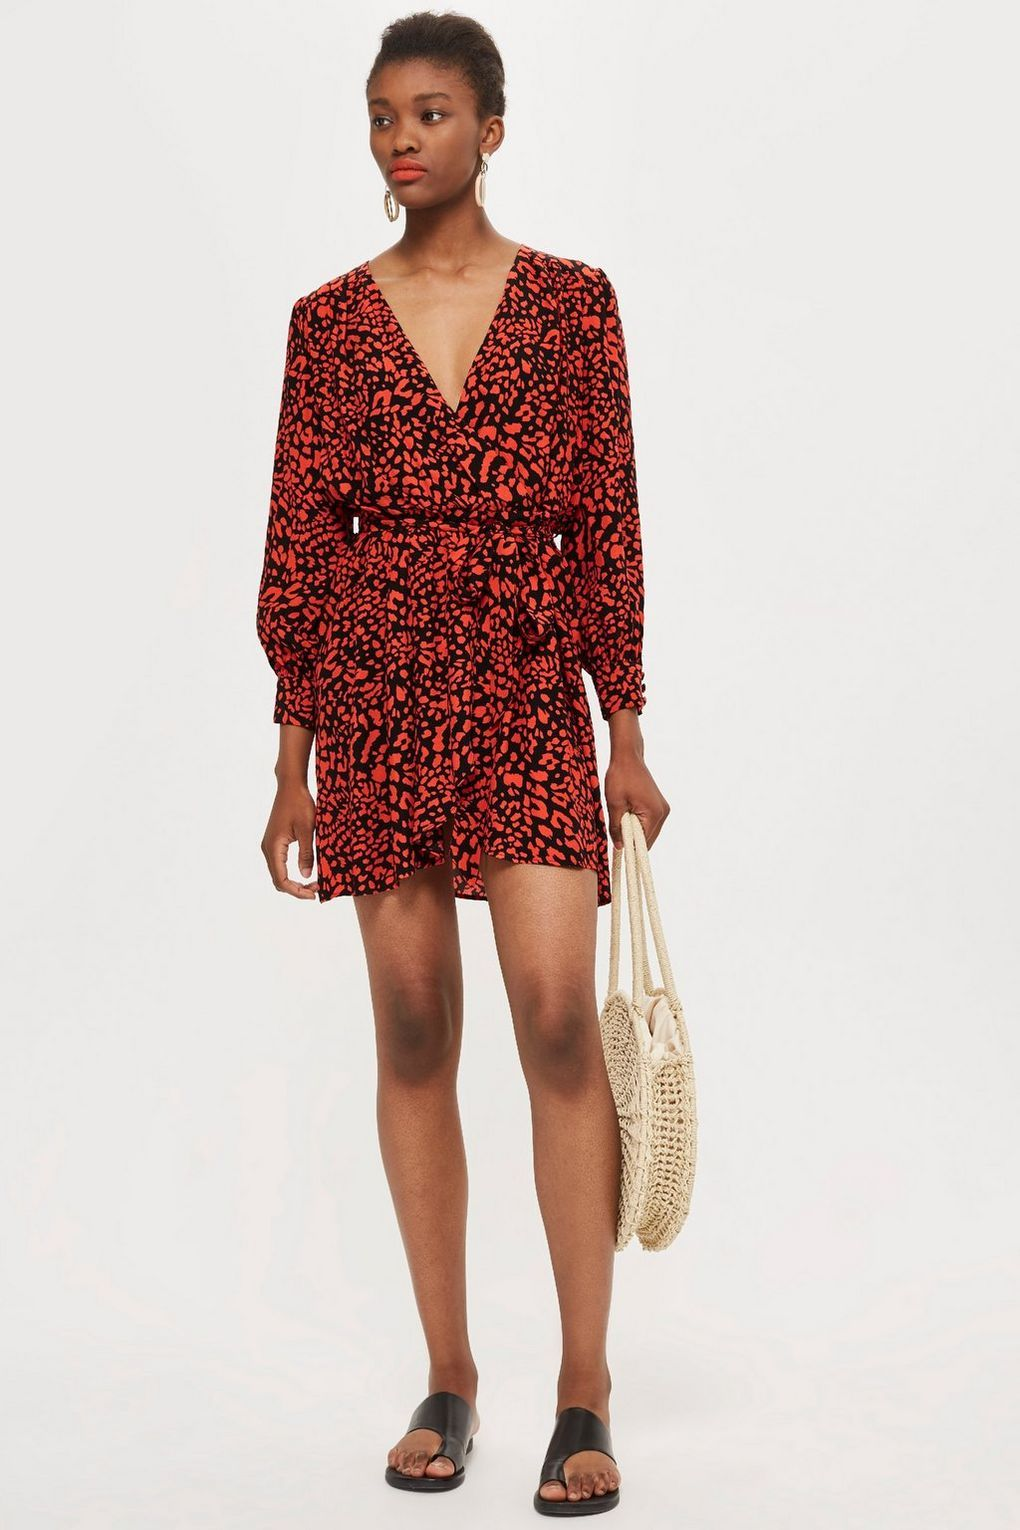 d7b95f62ed0 Animal Wrap Dress - New In Fashion - New In - Topshop Europe